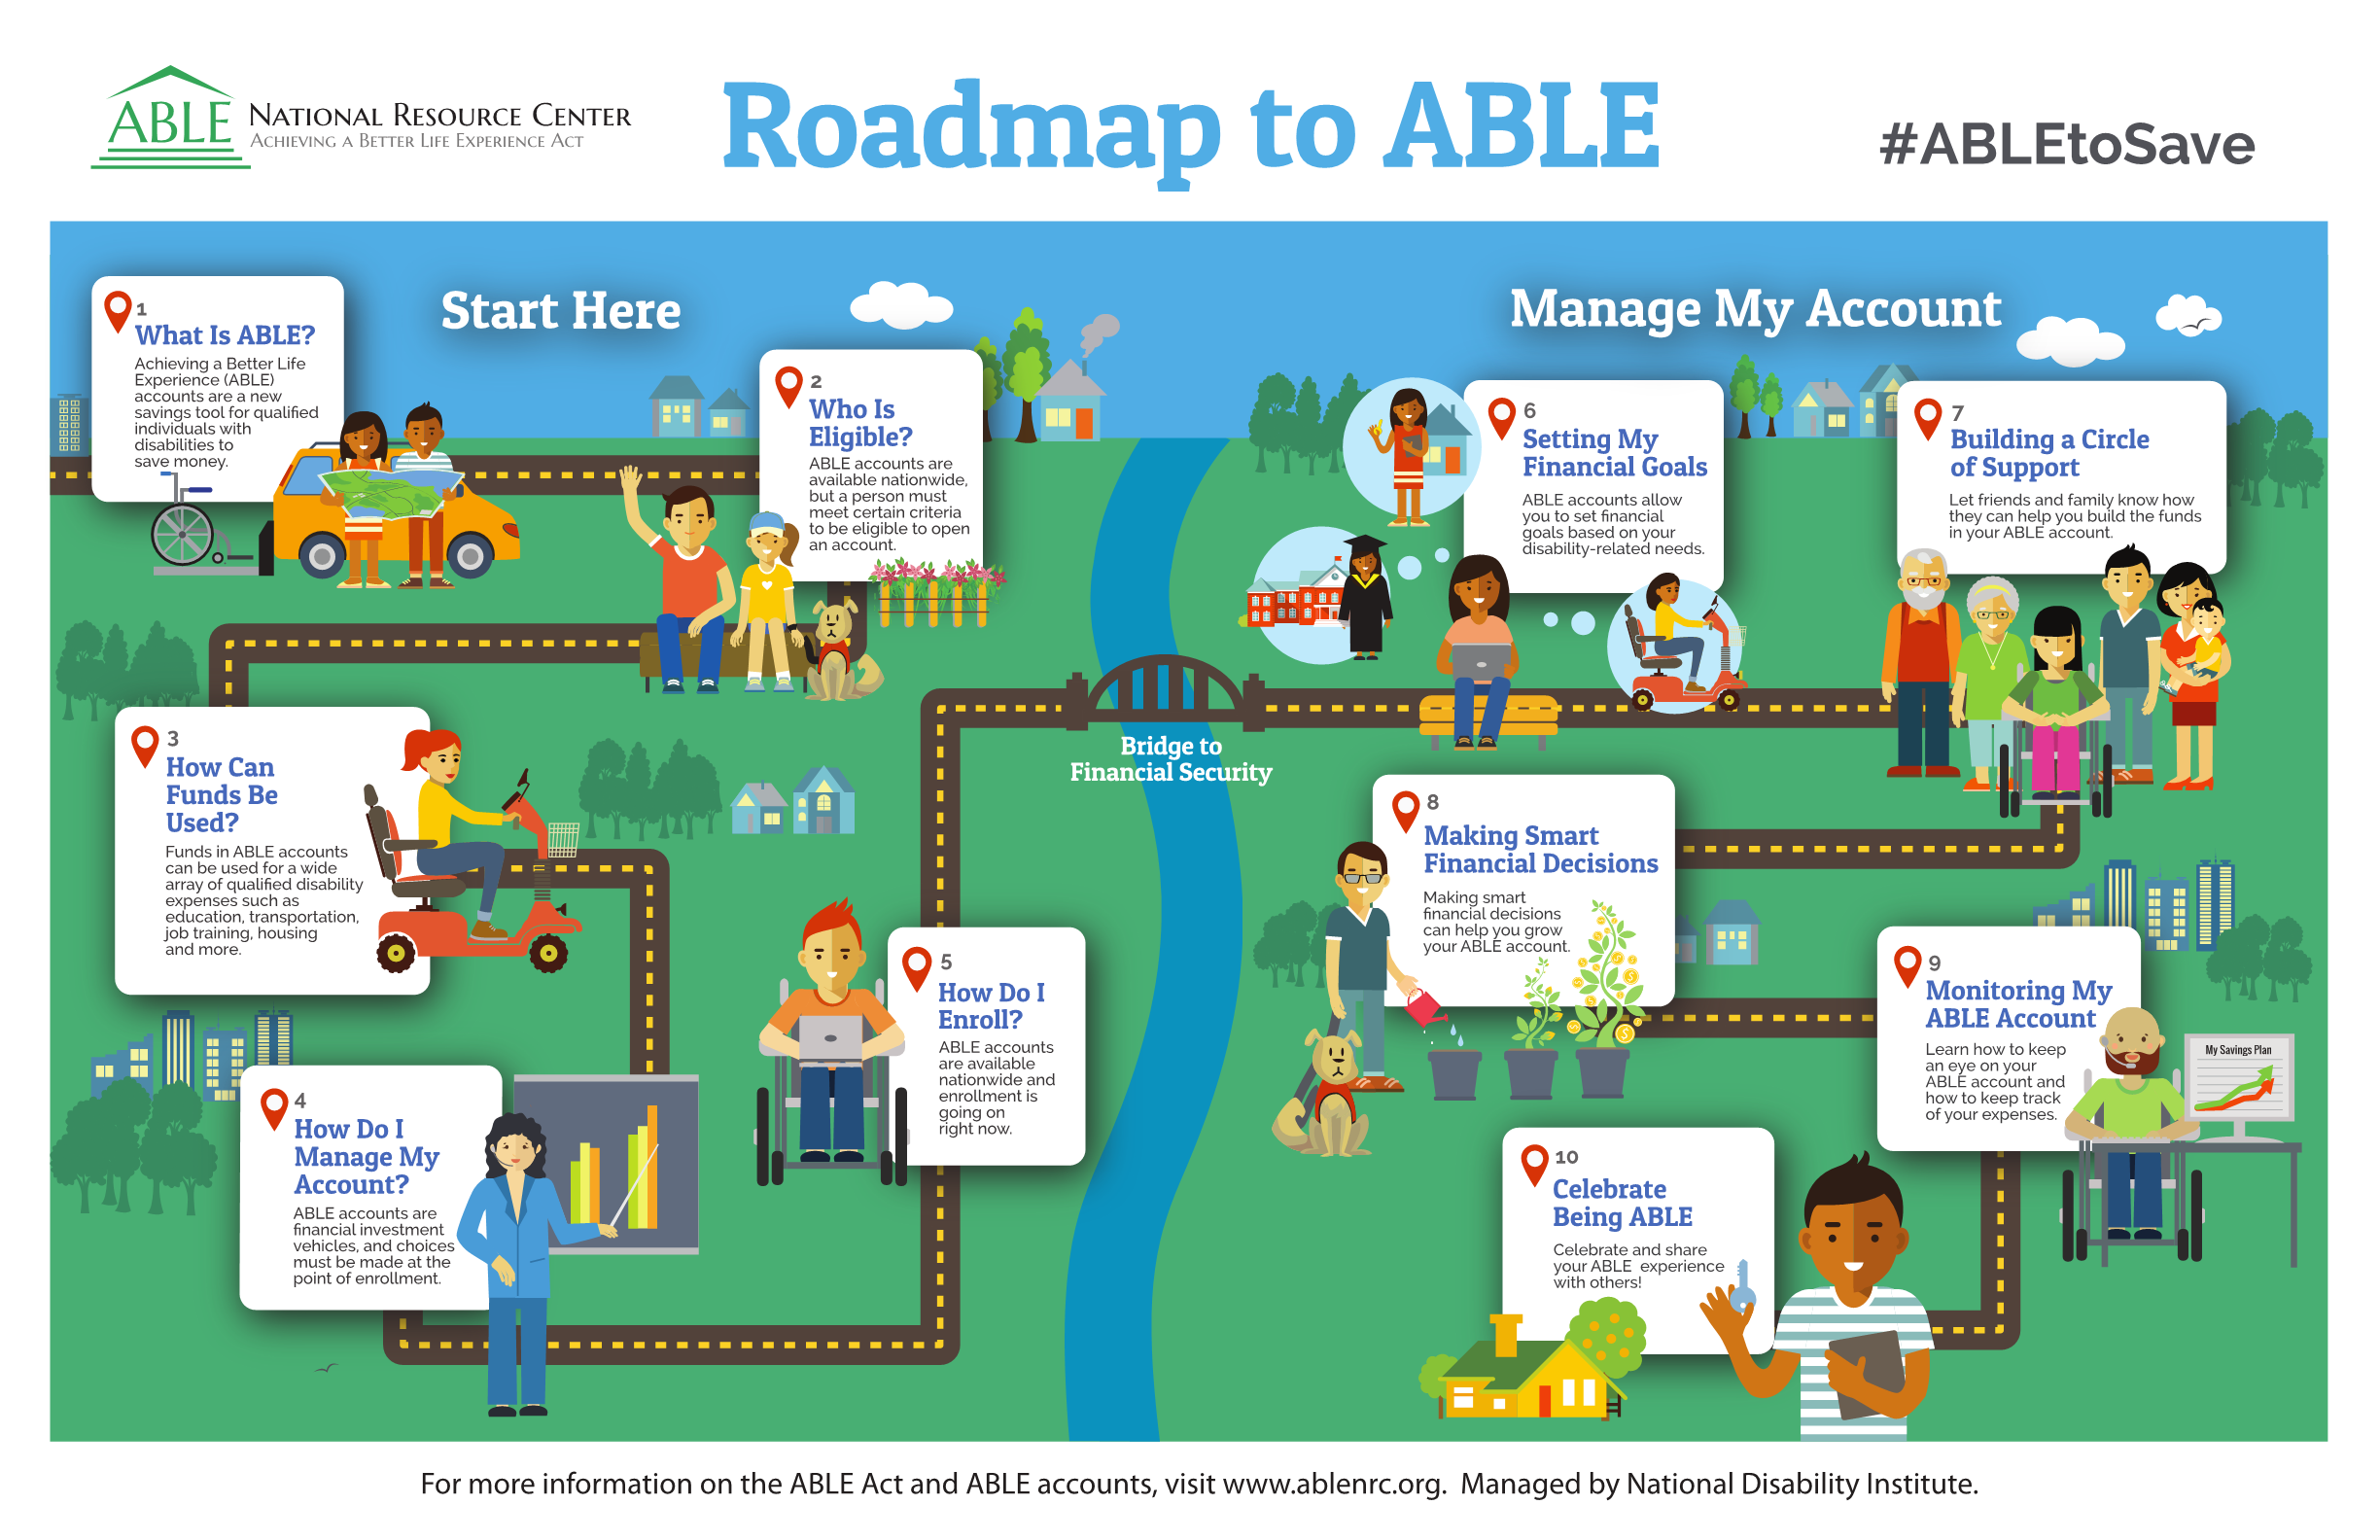 Roadmap to ABLE